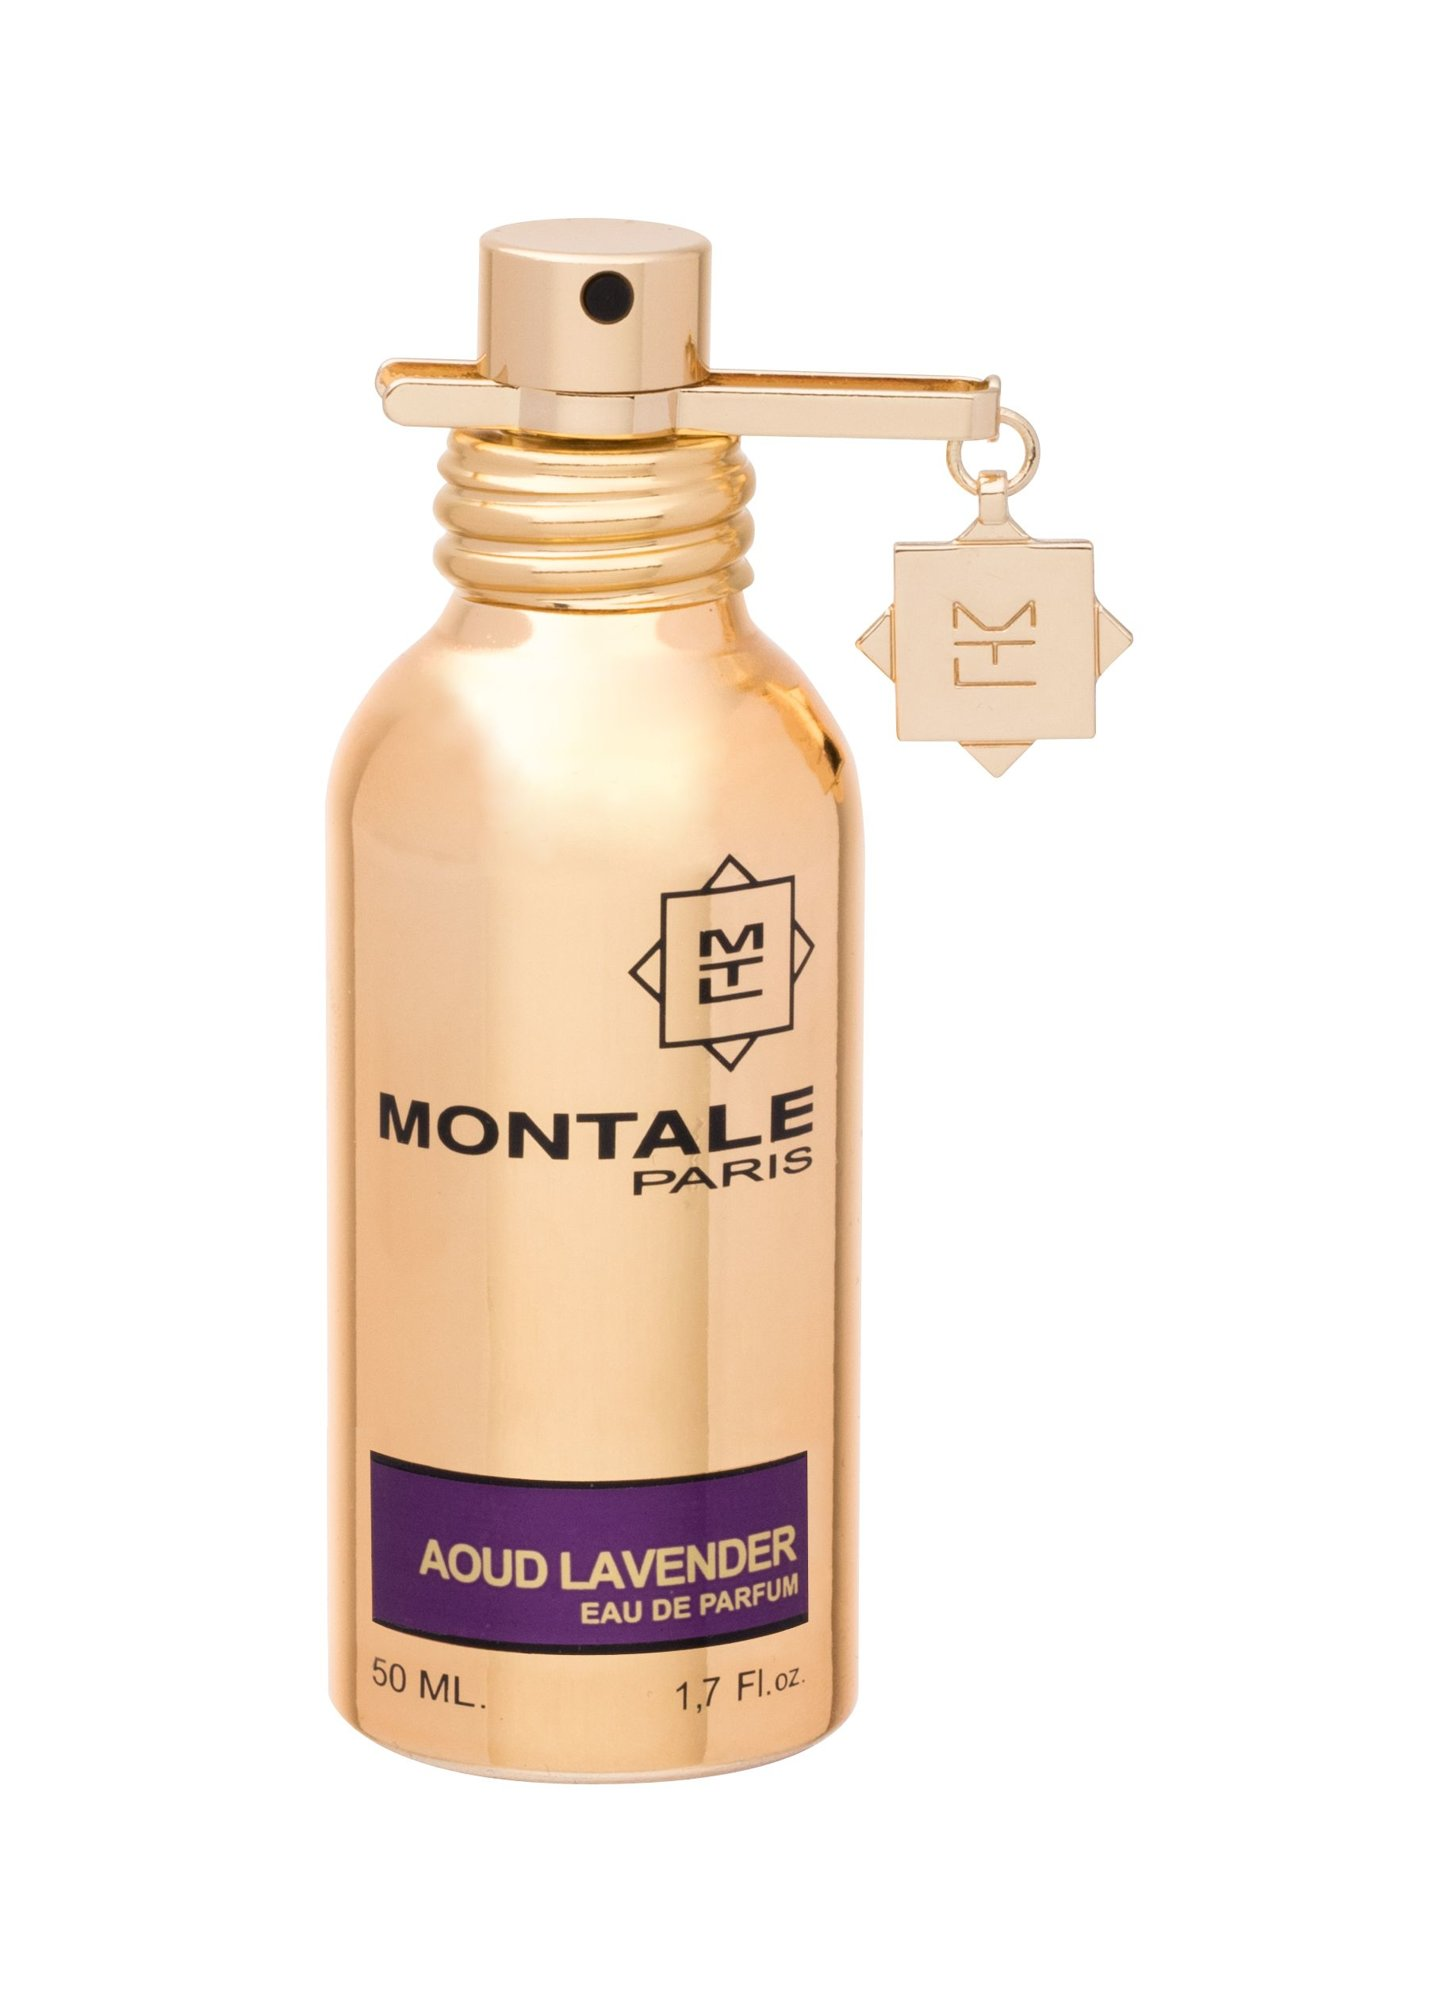 Montale Paris Aoud Lavander EDP 50ml